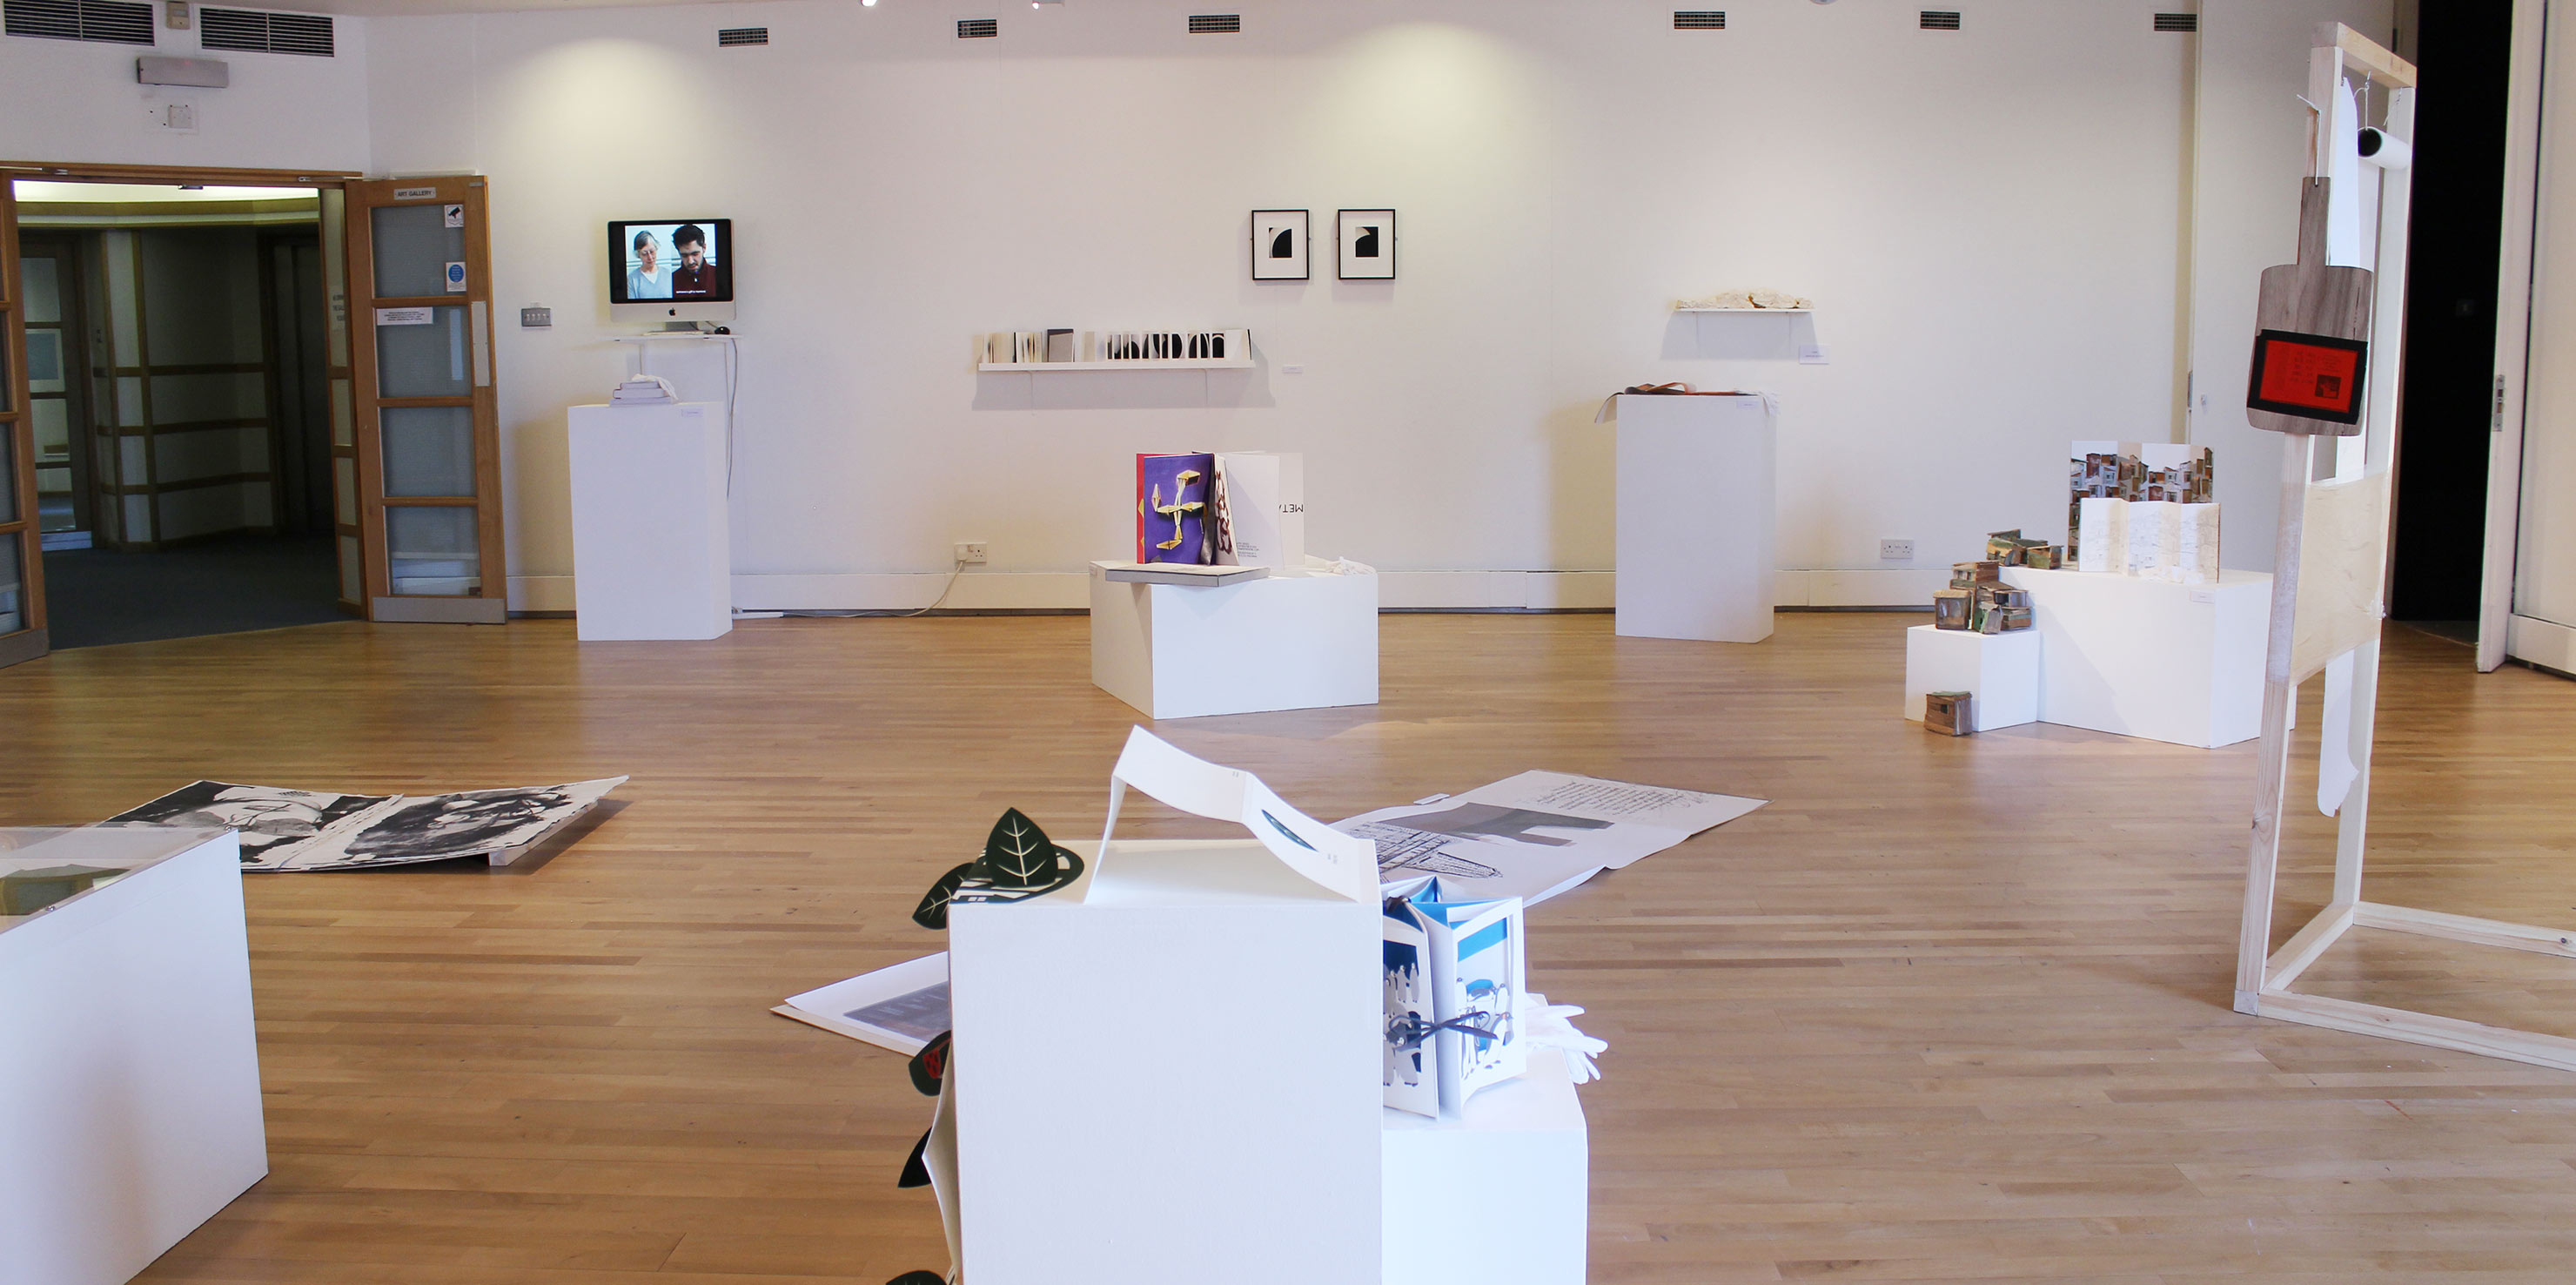 art in a bookshell: views of the exhibition in the milton gallery